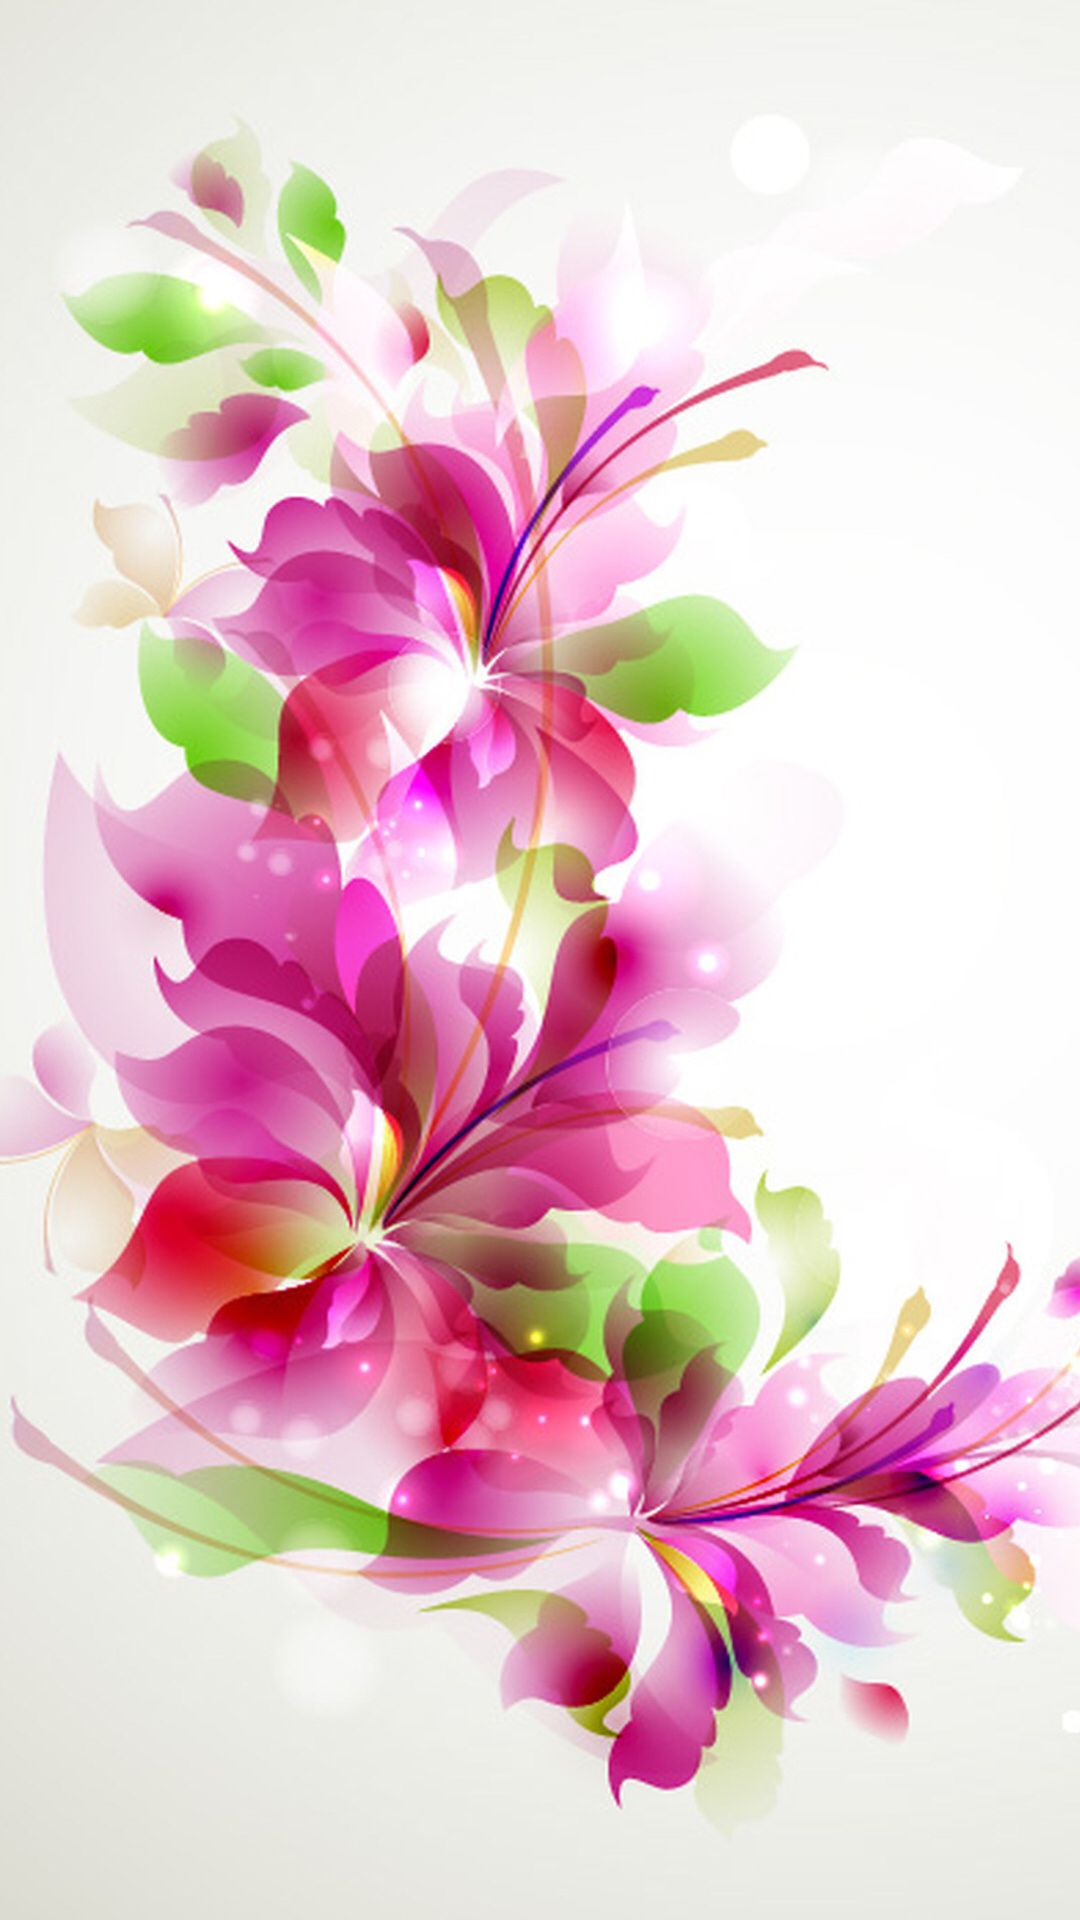 Check Out This Wallpaper For Your Iphone Http Zedge Net W10677189 Src Ios V 2 5 Via Zedge Flowery Wallpaper Flower Wallpaper Flower Art